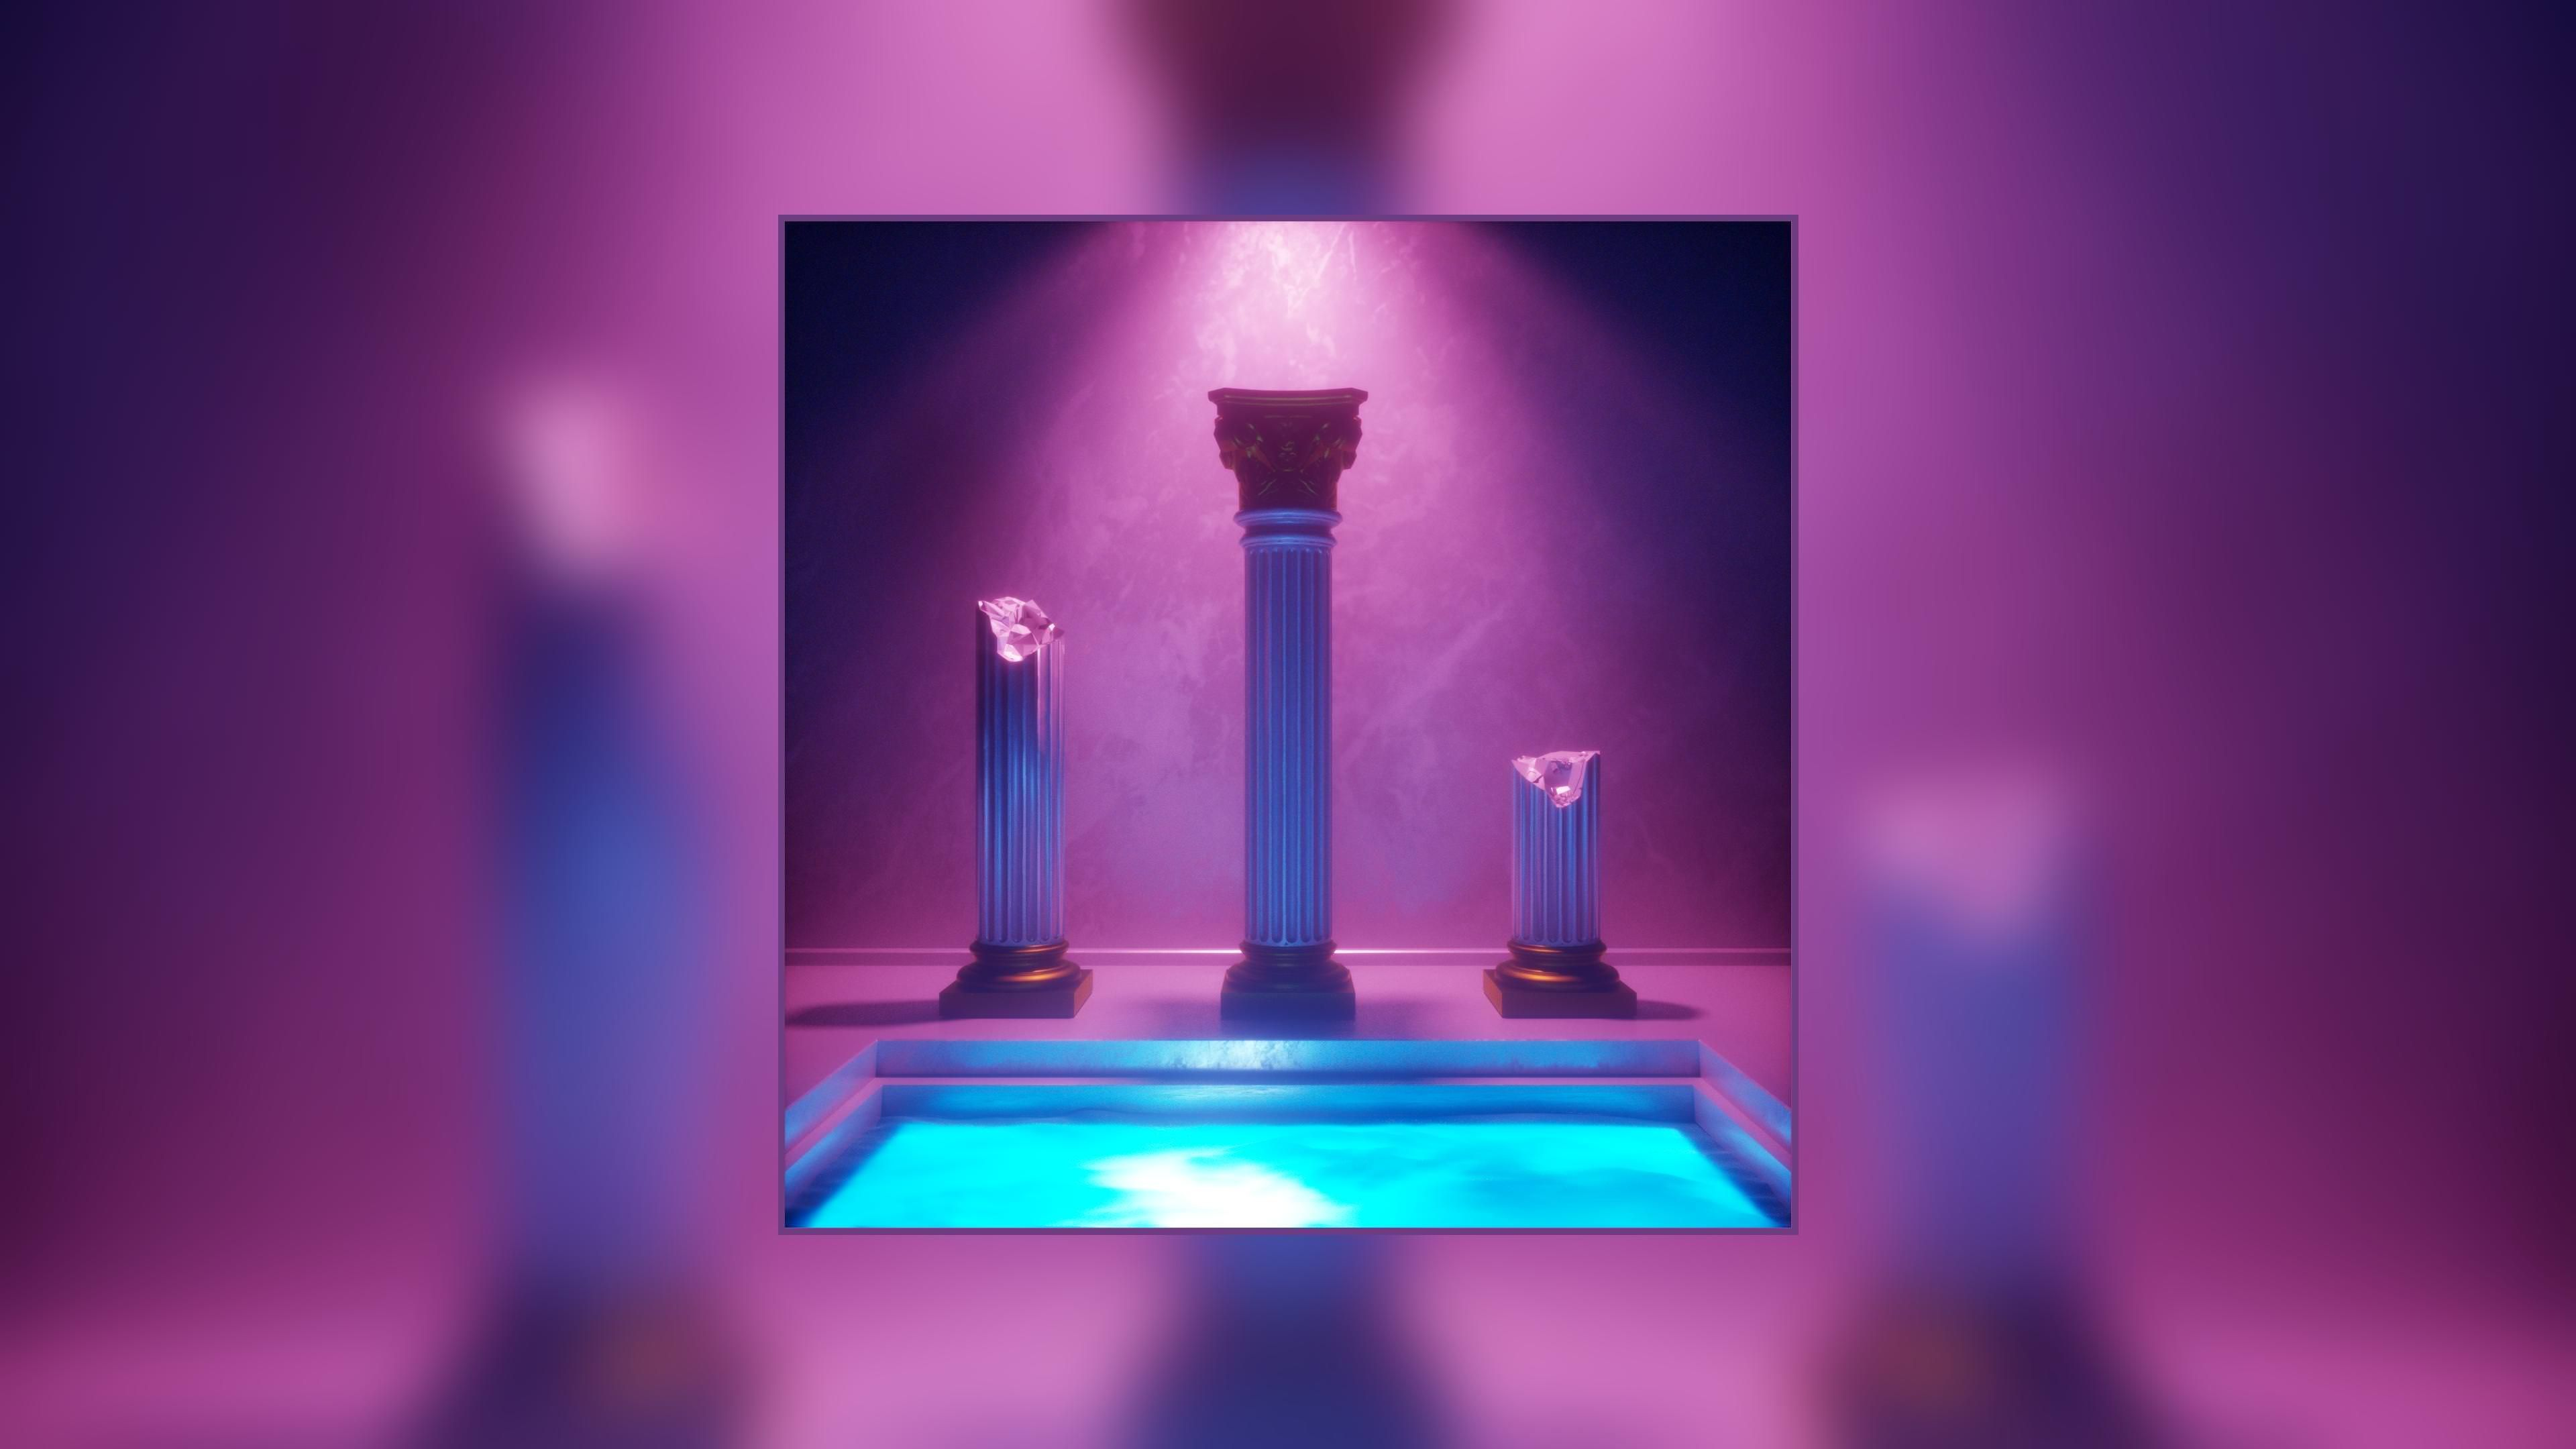 Aesthetic Vaporwave 4K Wallpapers   Top Aesthetic Vaporwave 3840x2160